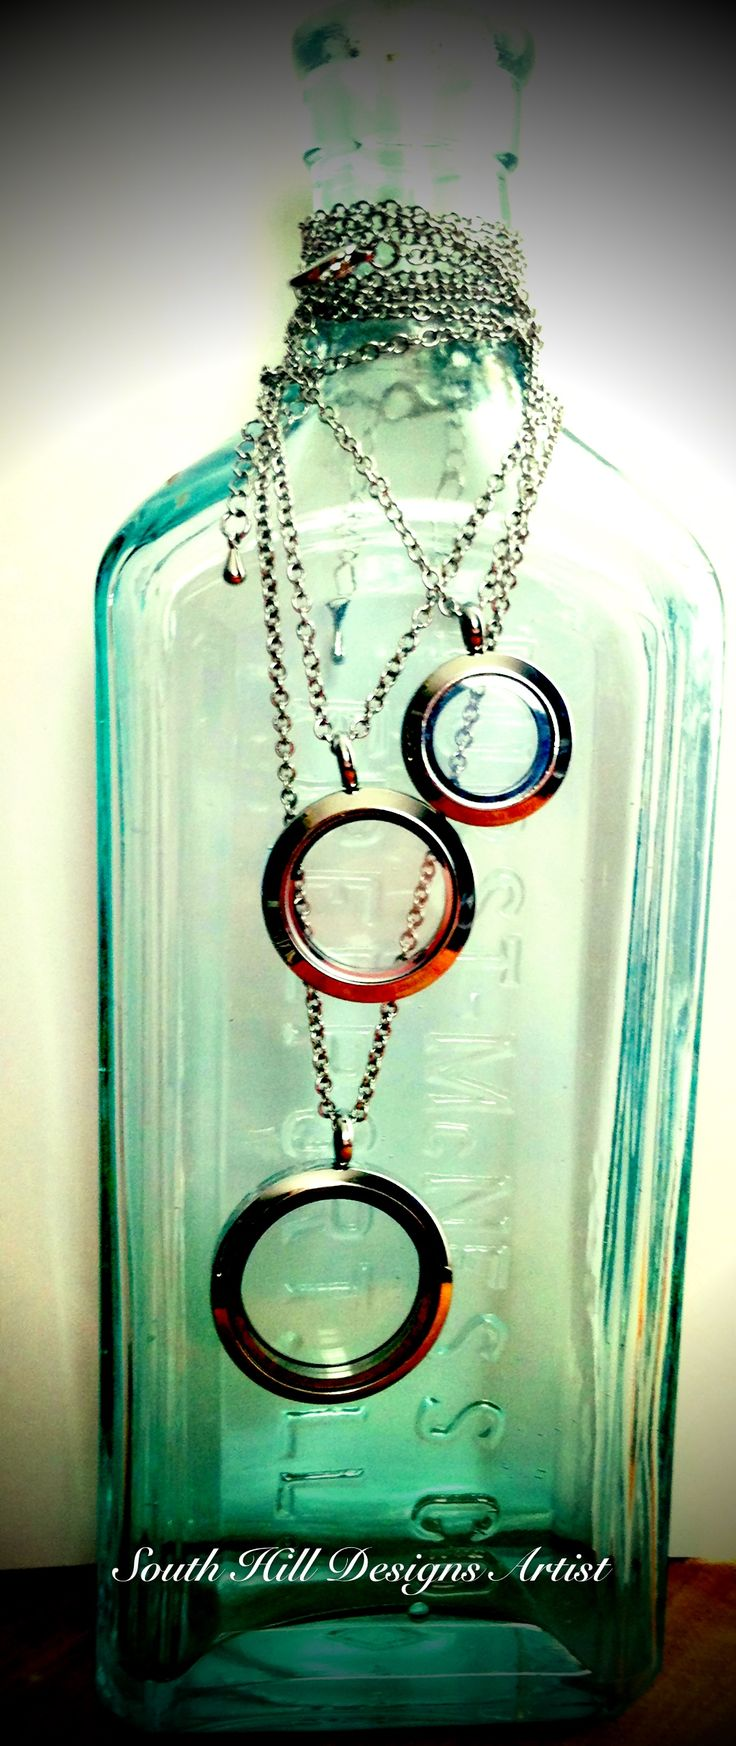 Large, Medium and Mini Silver Lockets South Hill Designs http://www.southhilldesigns.com/acharmedlife http//www.facebook.com/erinscharmedlife